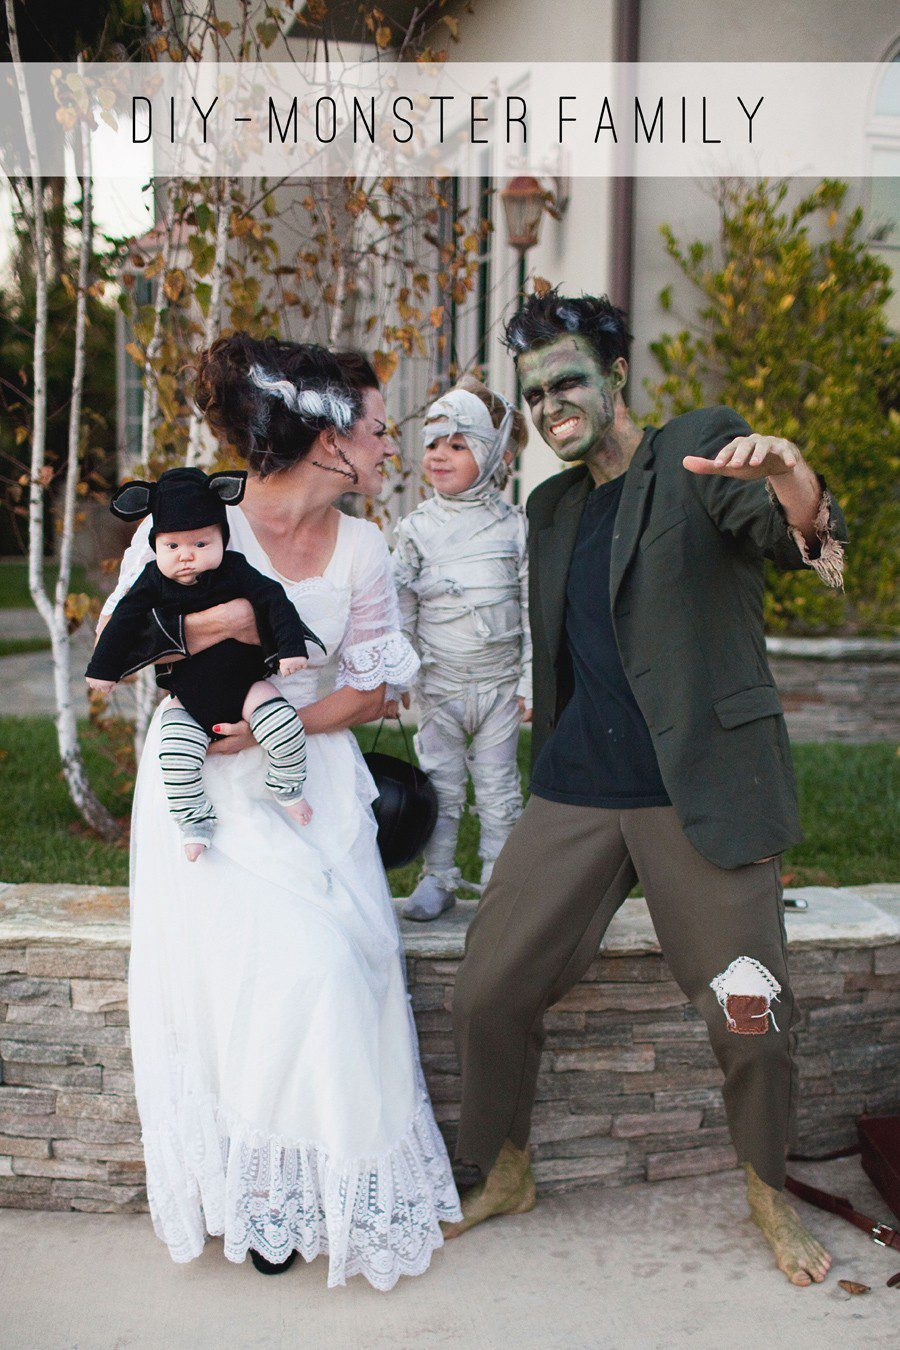 Monster Family costume idea from Tell Love and Party, plus 10 favorite family costumes (with ideas for baby too!) from popular Florida lifestyle blogger Tabitha Blue of Fresh Mommy Blog! | Cute Halloween Family Costume Ideas featured by top Florida lifestyle blogger, Fresh Mommy Blog: Monster Family